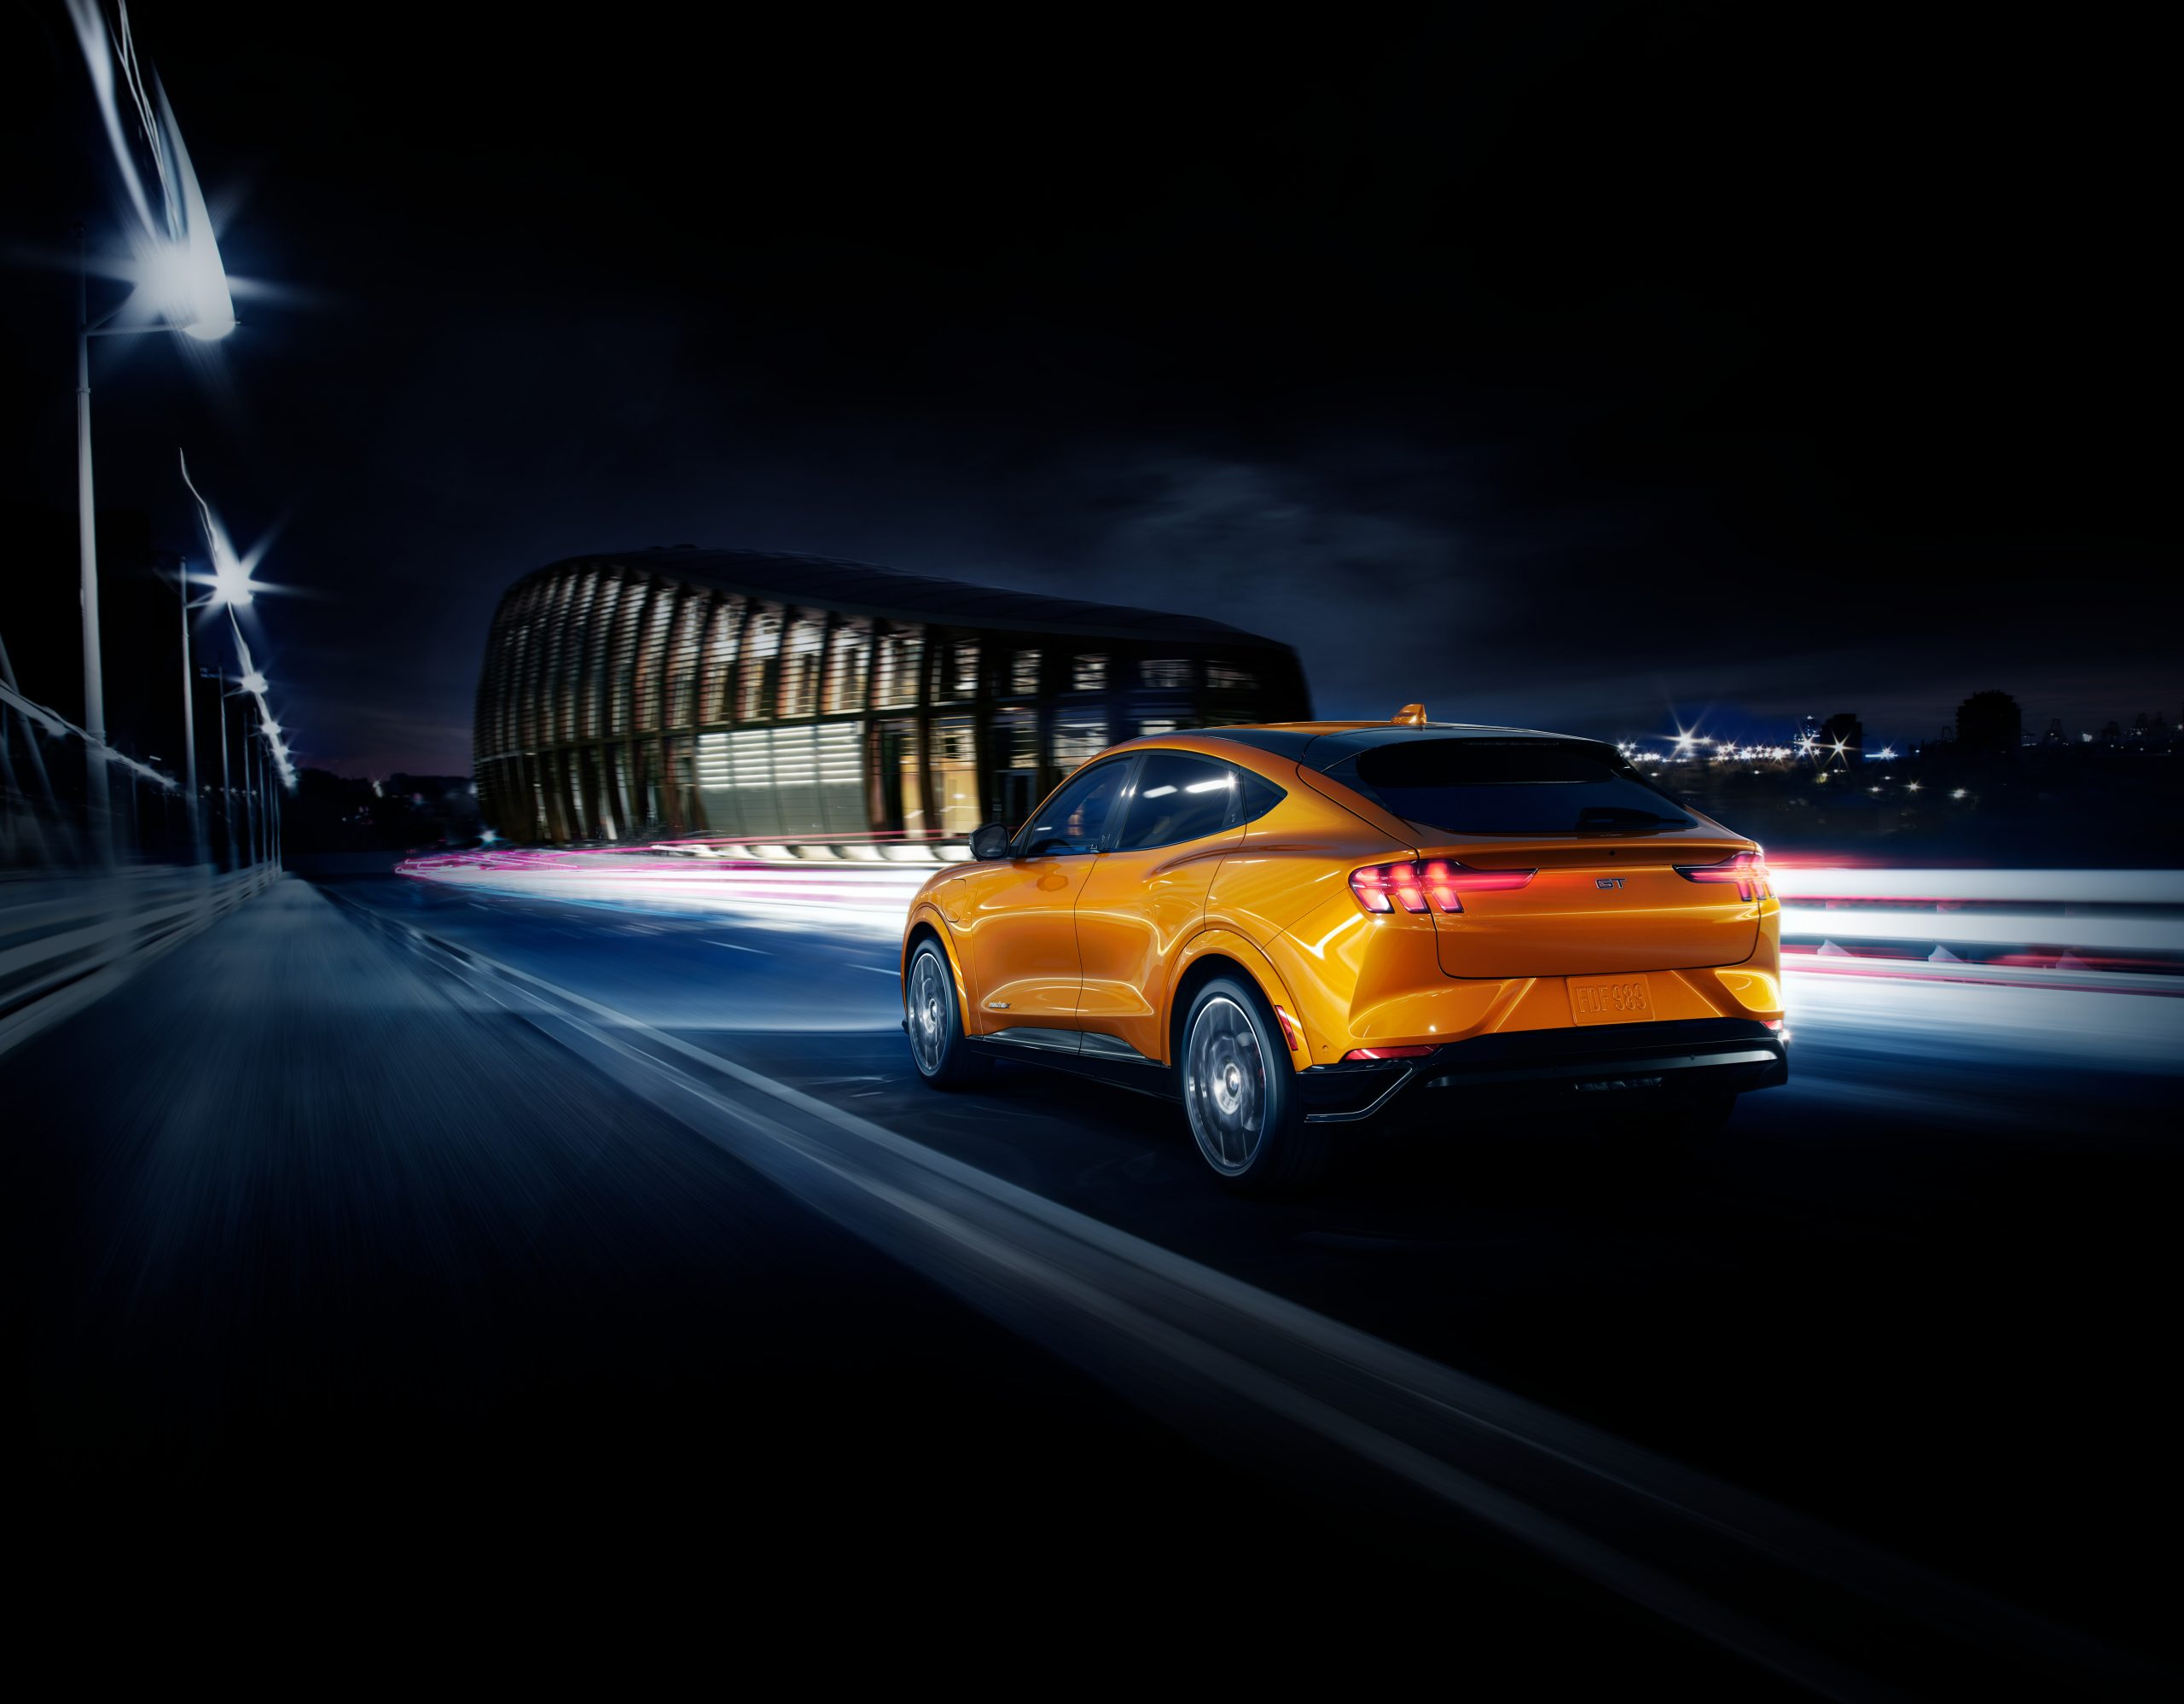 2020 FORD MACH E GT CYBER ORANGE 02 scaled Από 51.587 ευρώ η τιμή της Ford Mustang Mach-E στην Ελλάδα